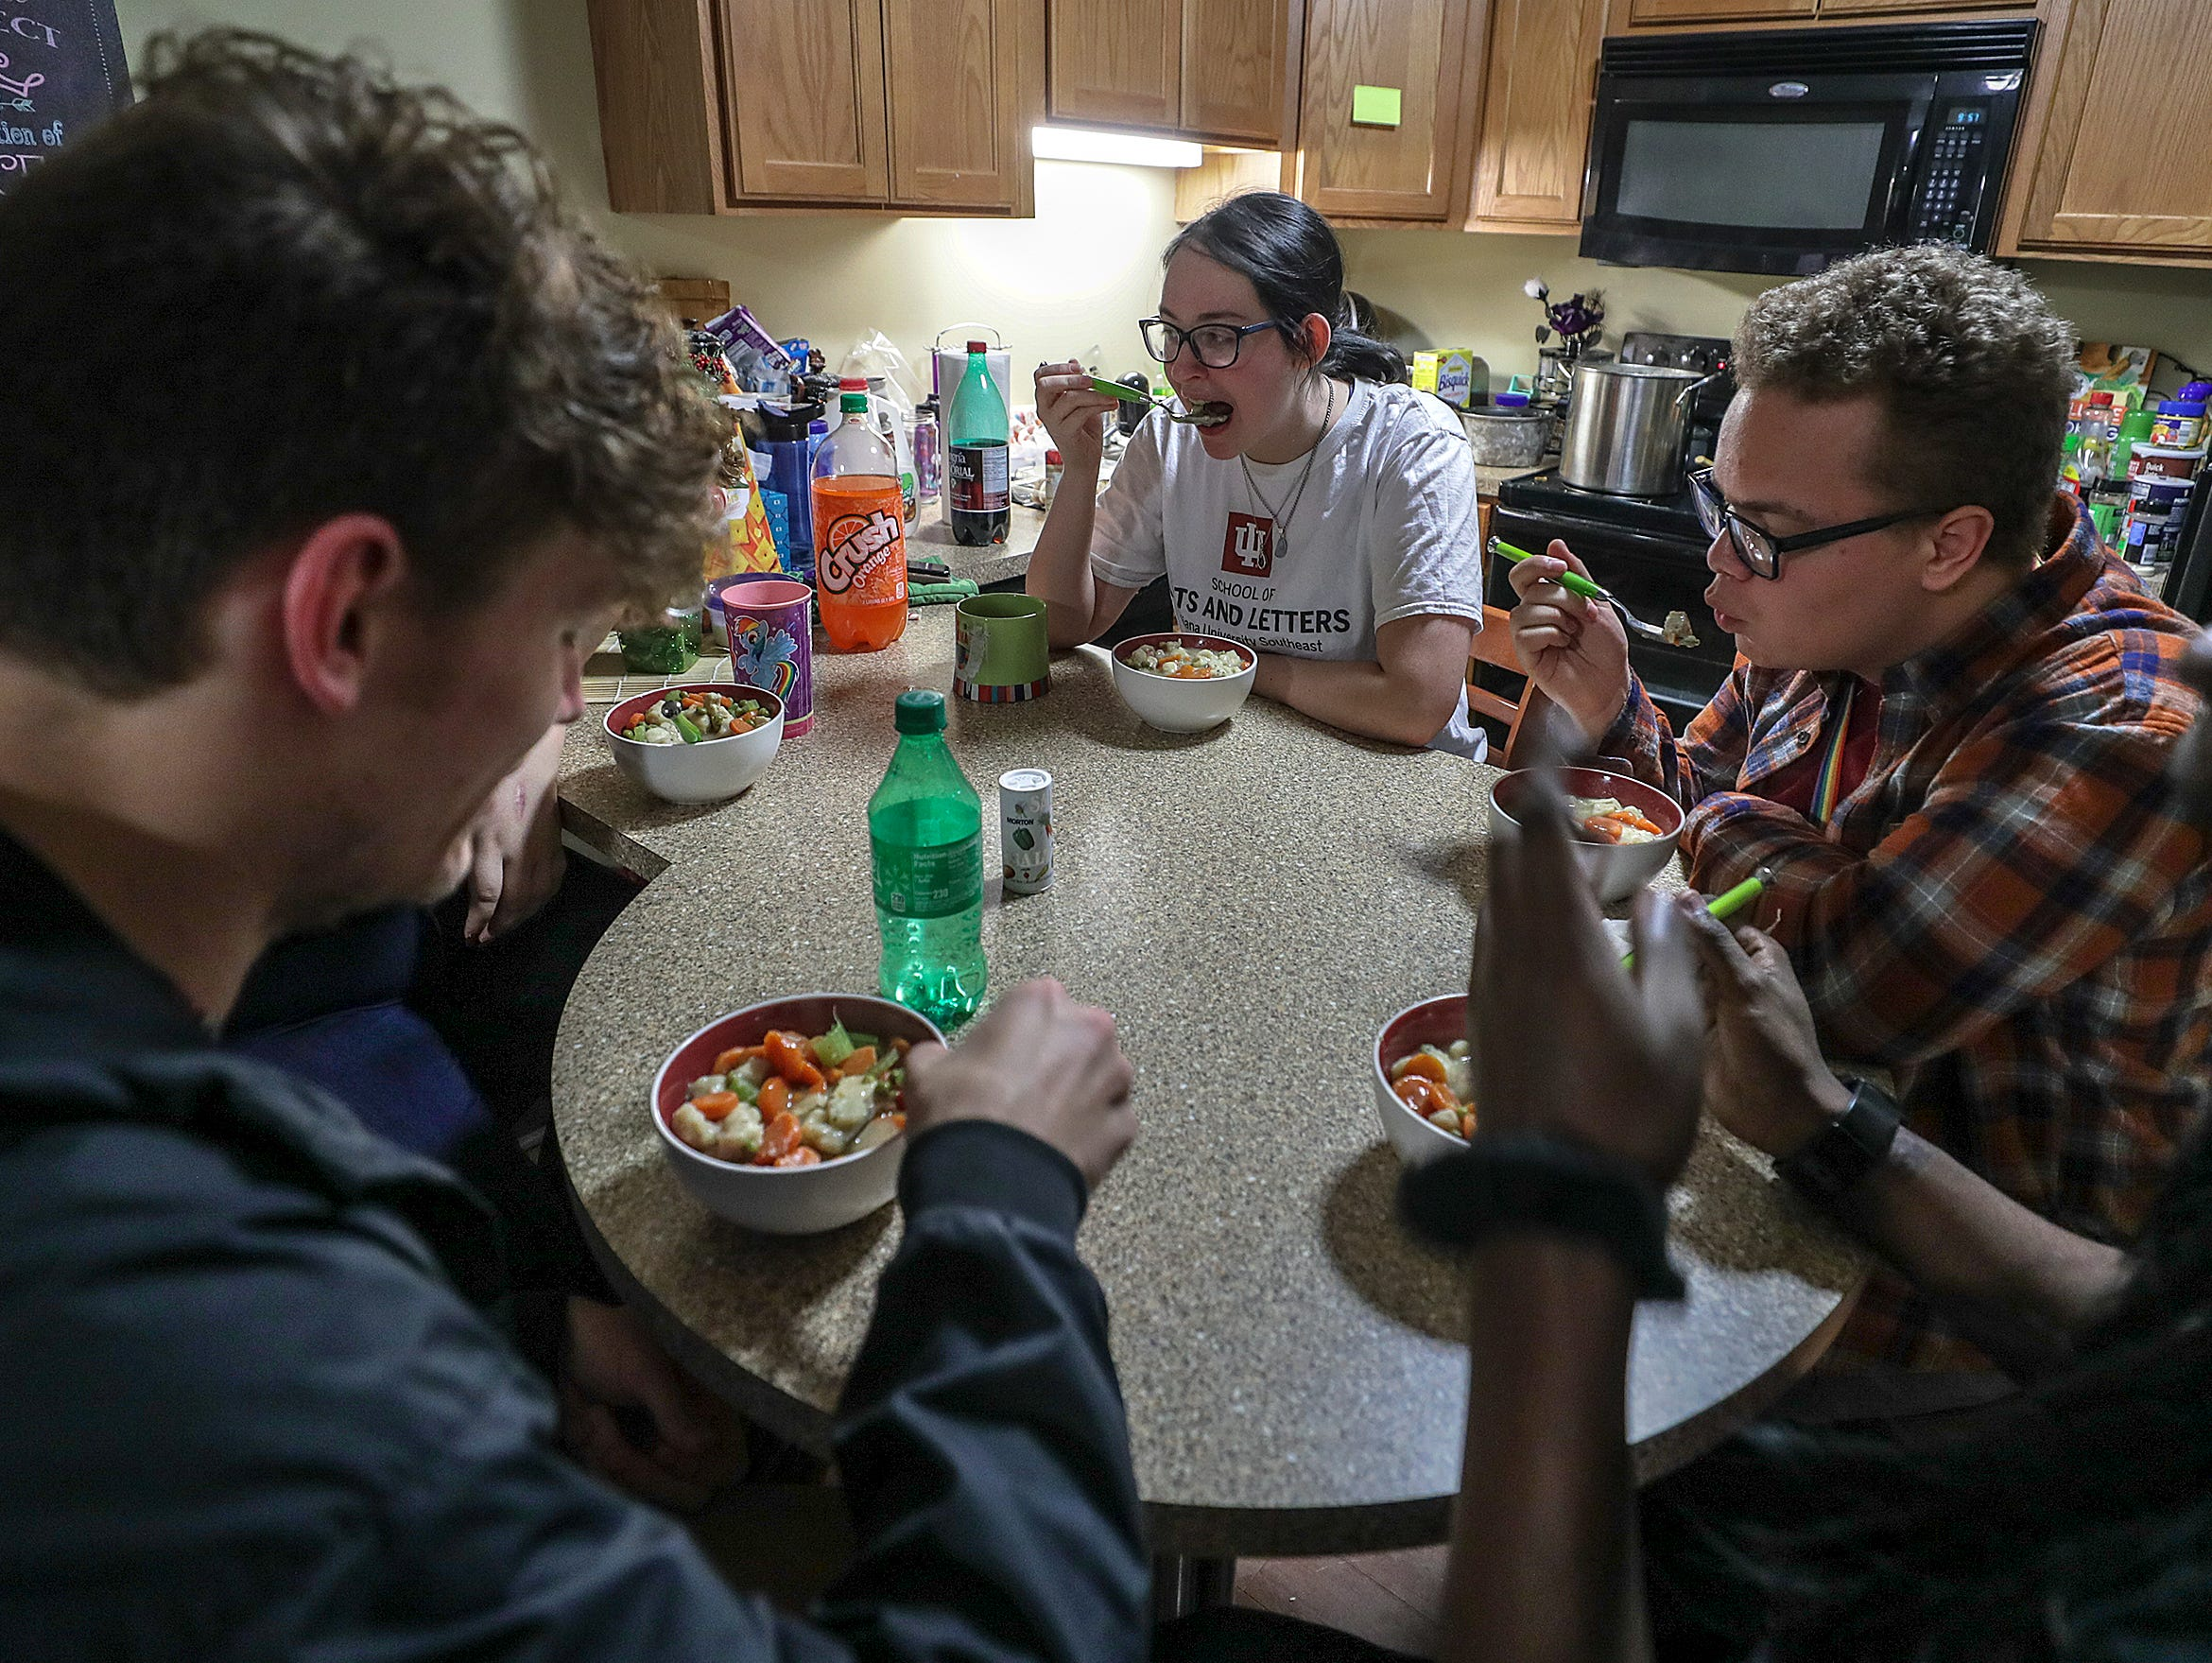 IUS students Brianna Reynolds, Johnie Adams, Stephon Camp, Josiah Pohl and Jeanette Hansen eat together in their campus housing with some of the food they received from the campus food bank. Feb. 5, 2019